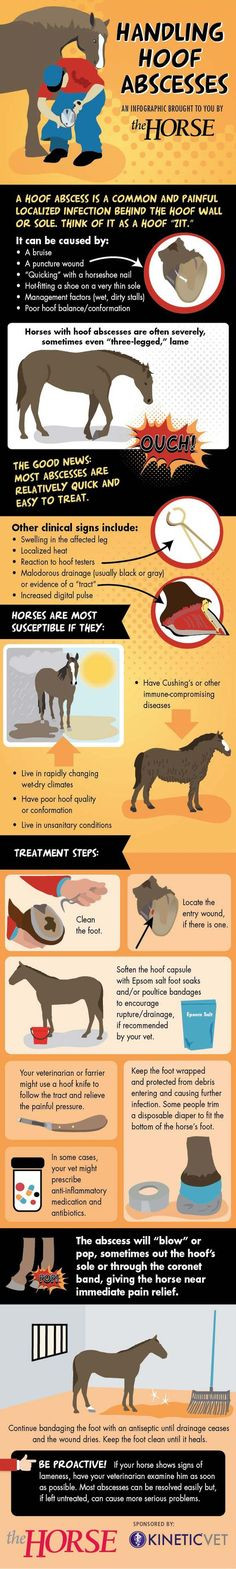 [INFOGRAPHIC] Handling Hoof Abscesses – TheHorse.com |